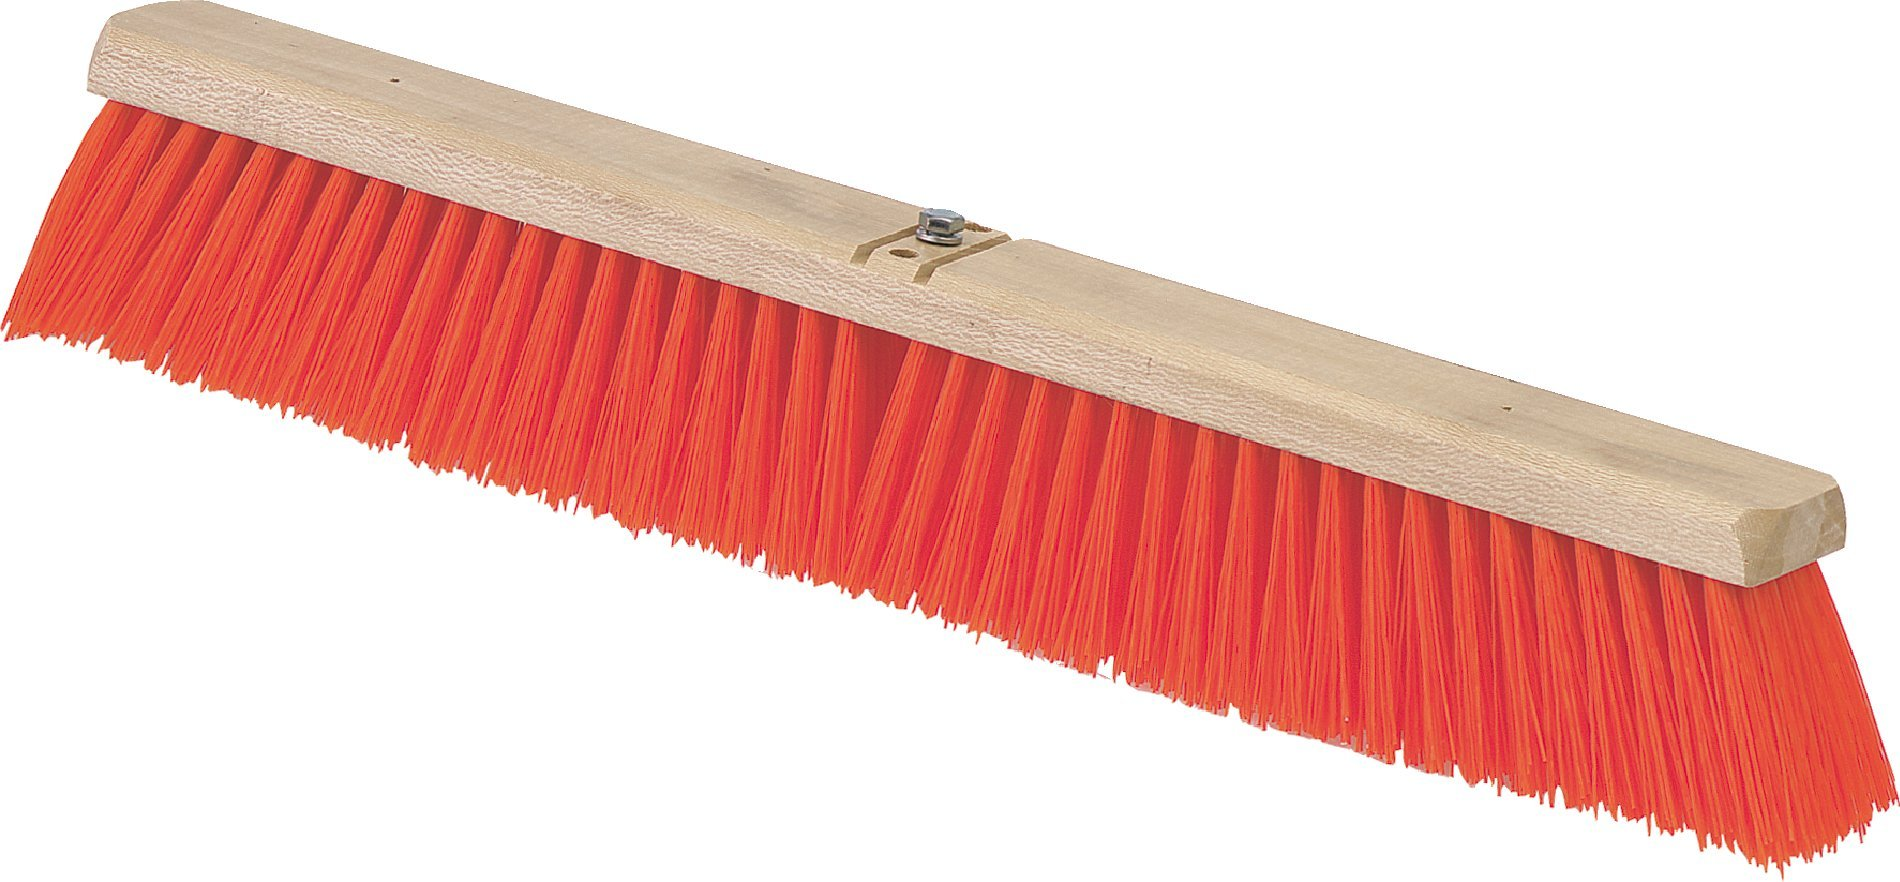 Carlisle 3610762424 Flo-Pac Juno Style Industrial Strength Sweep, Polypropylene Bristles, 24'' Length, Orange (Pack of 12) by Carlisle